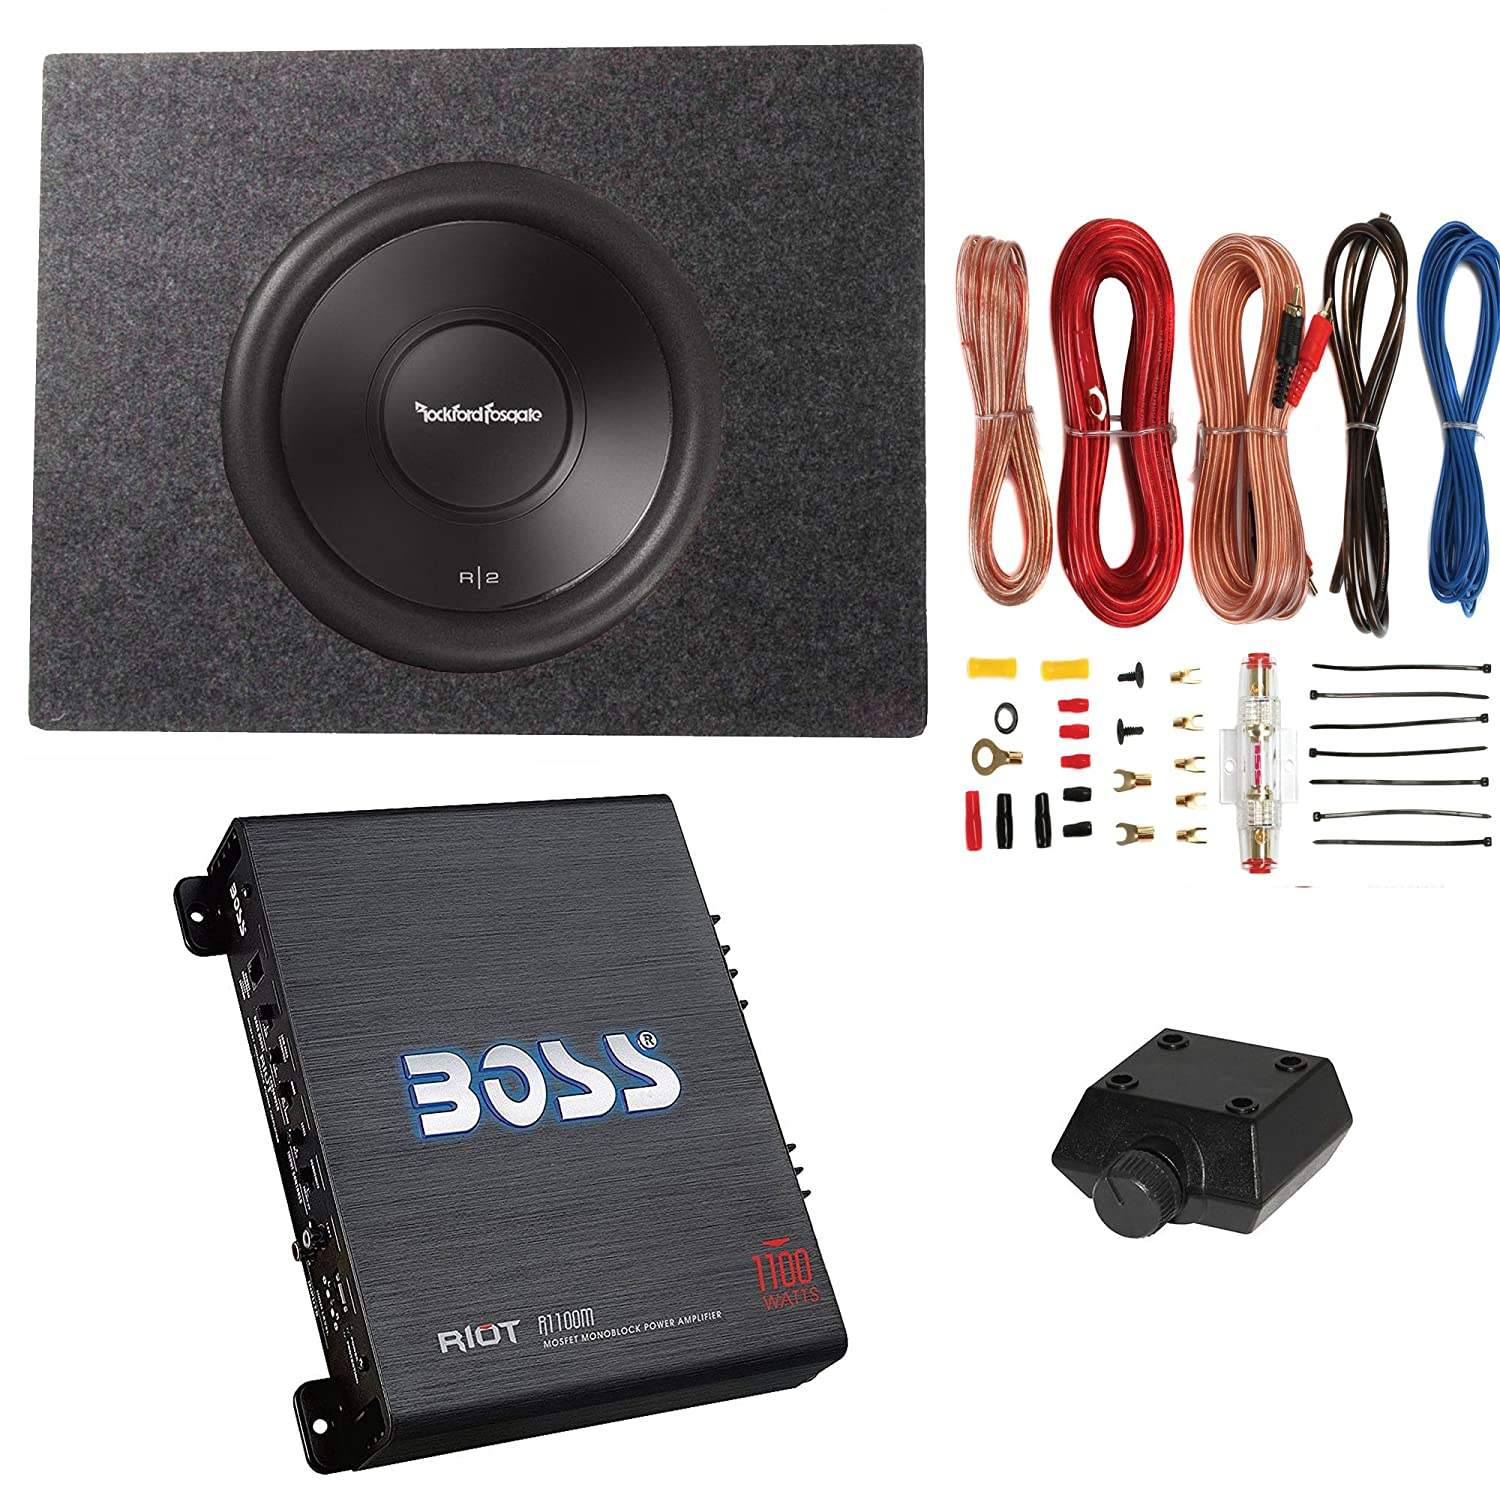 Rockford Fosgate 500w Subwoofer Q Power Truck Boss Wiring Diagram 2 Subwoofers 1 Amp Enclosure 1100w Amplifier Musical Instruments